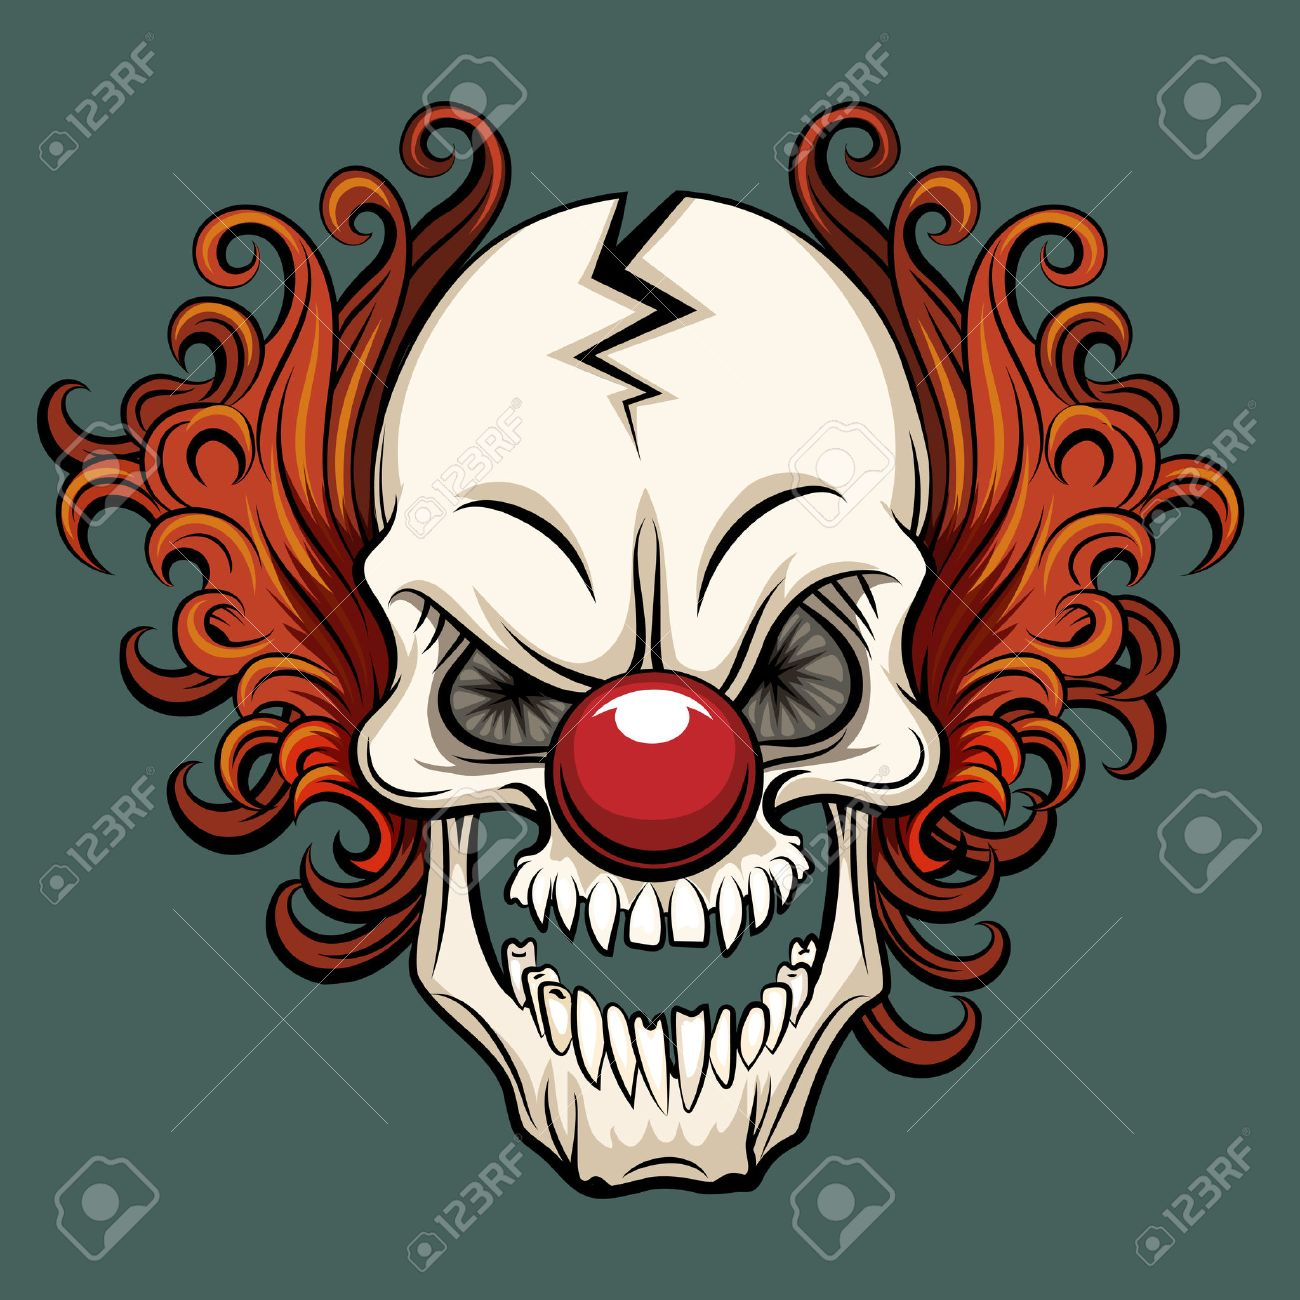 125,420 Horror Stock Illustrations, Cliparts And Royalty Free ...